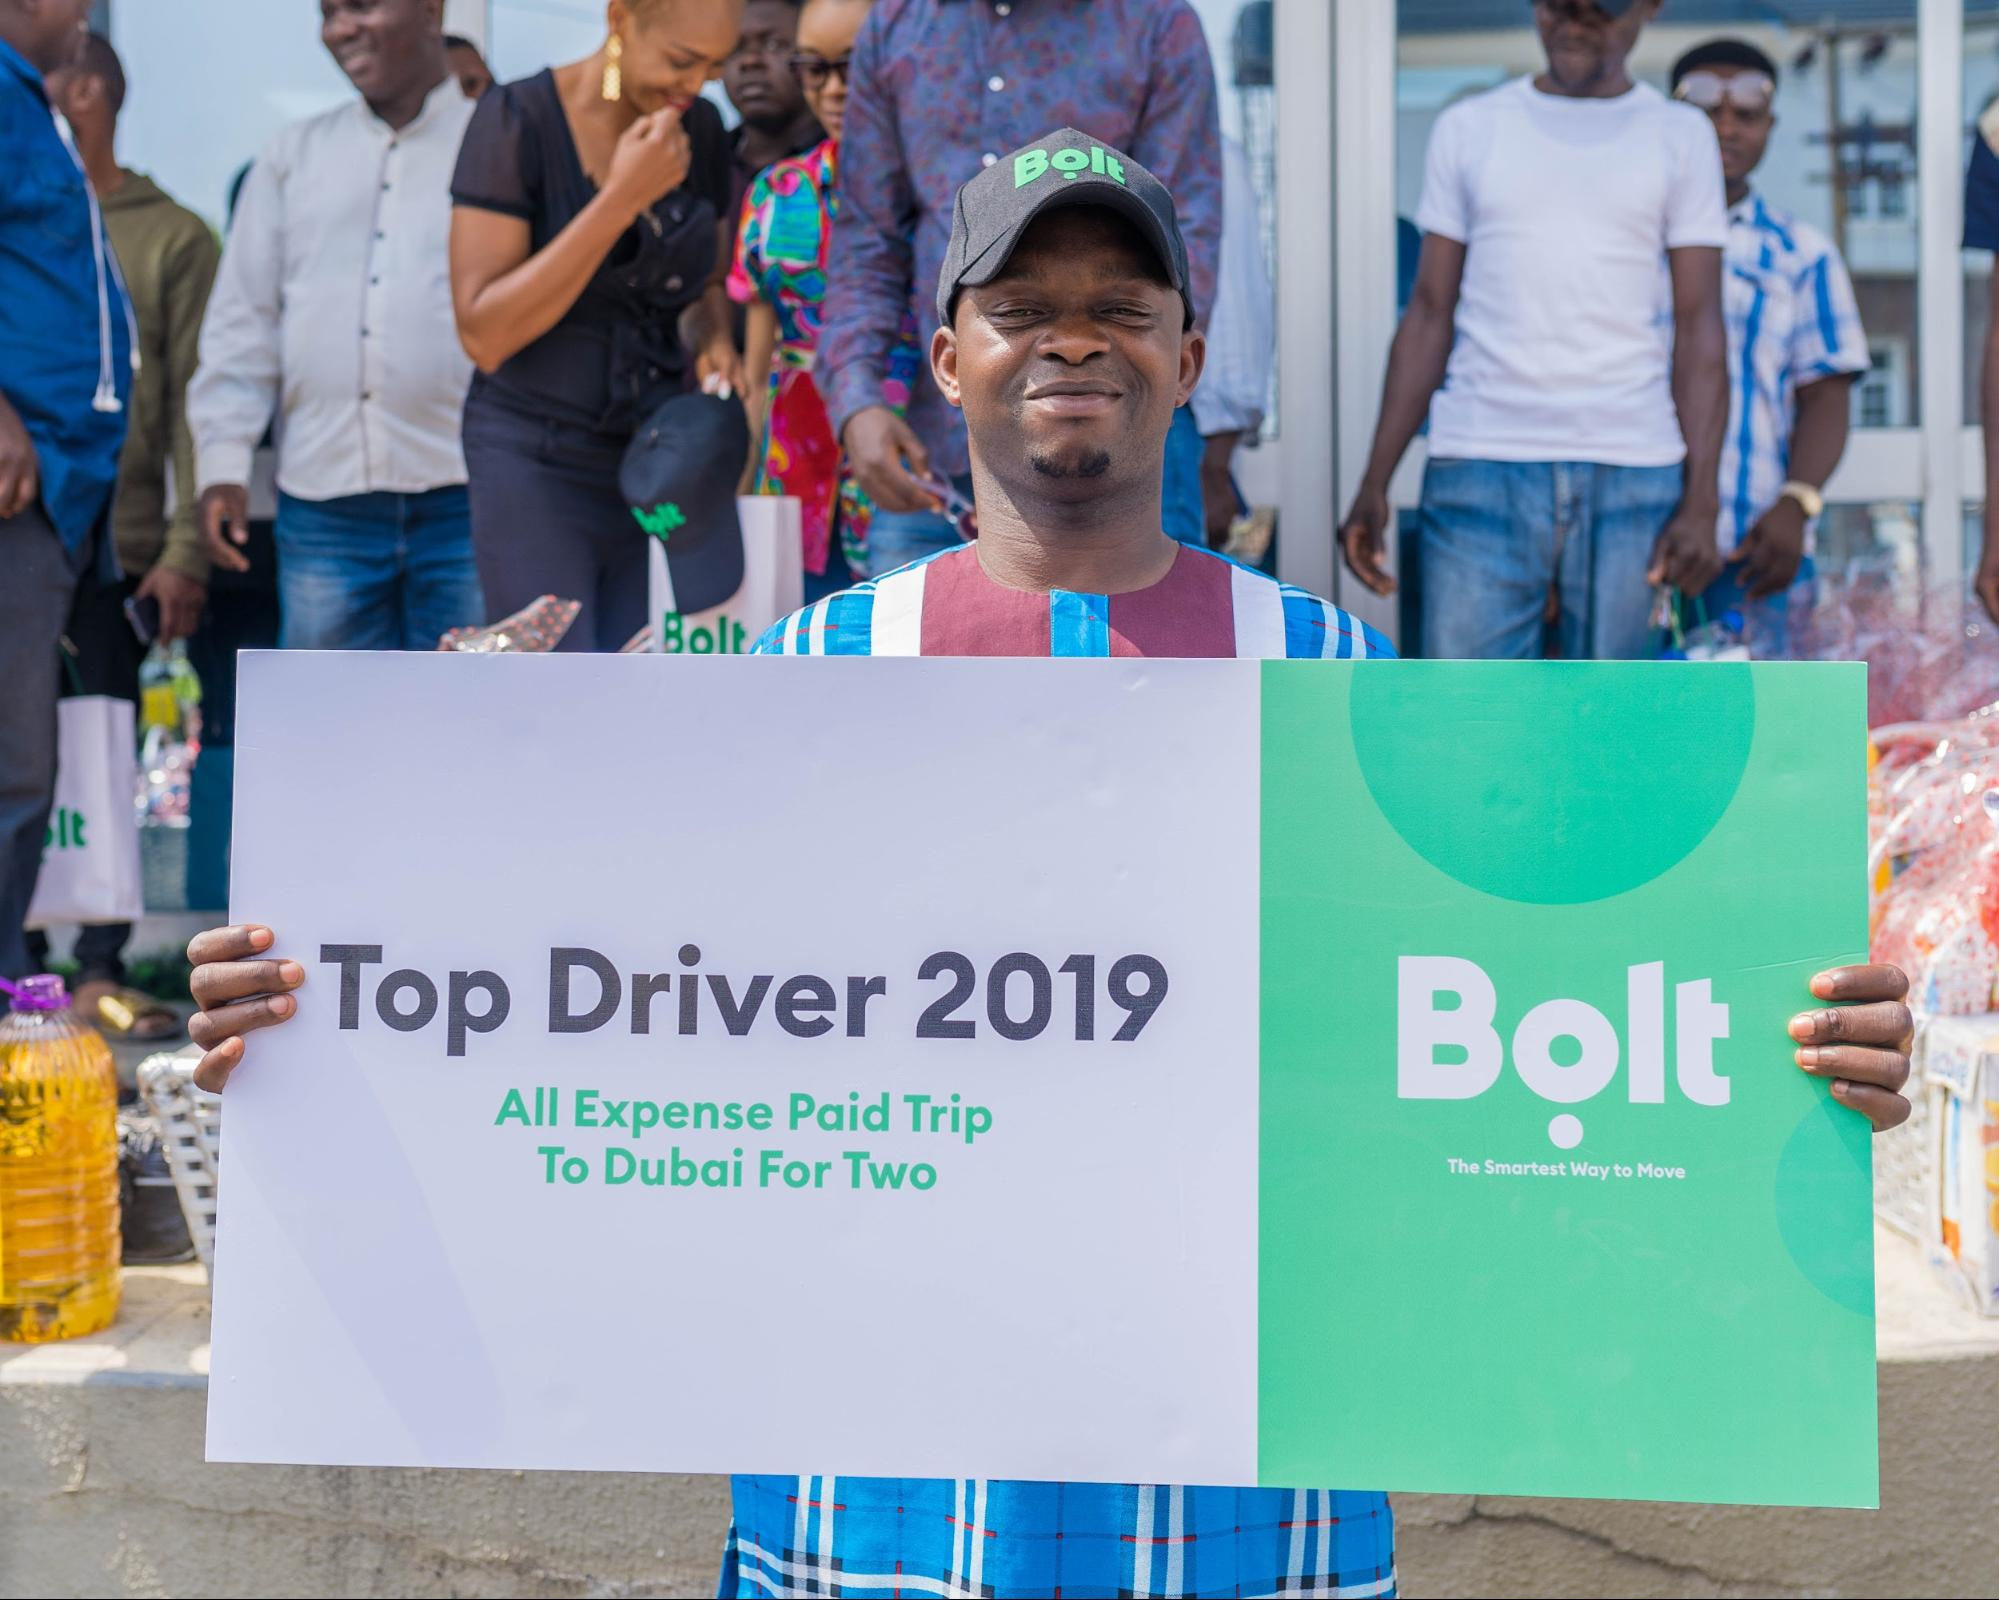 Bolt Top Driver ceremony winner